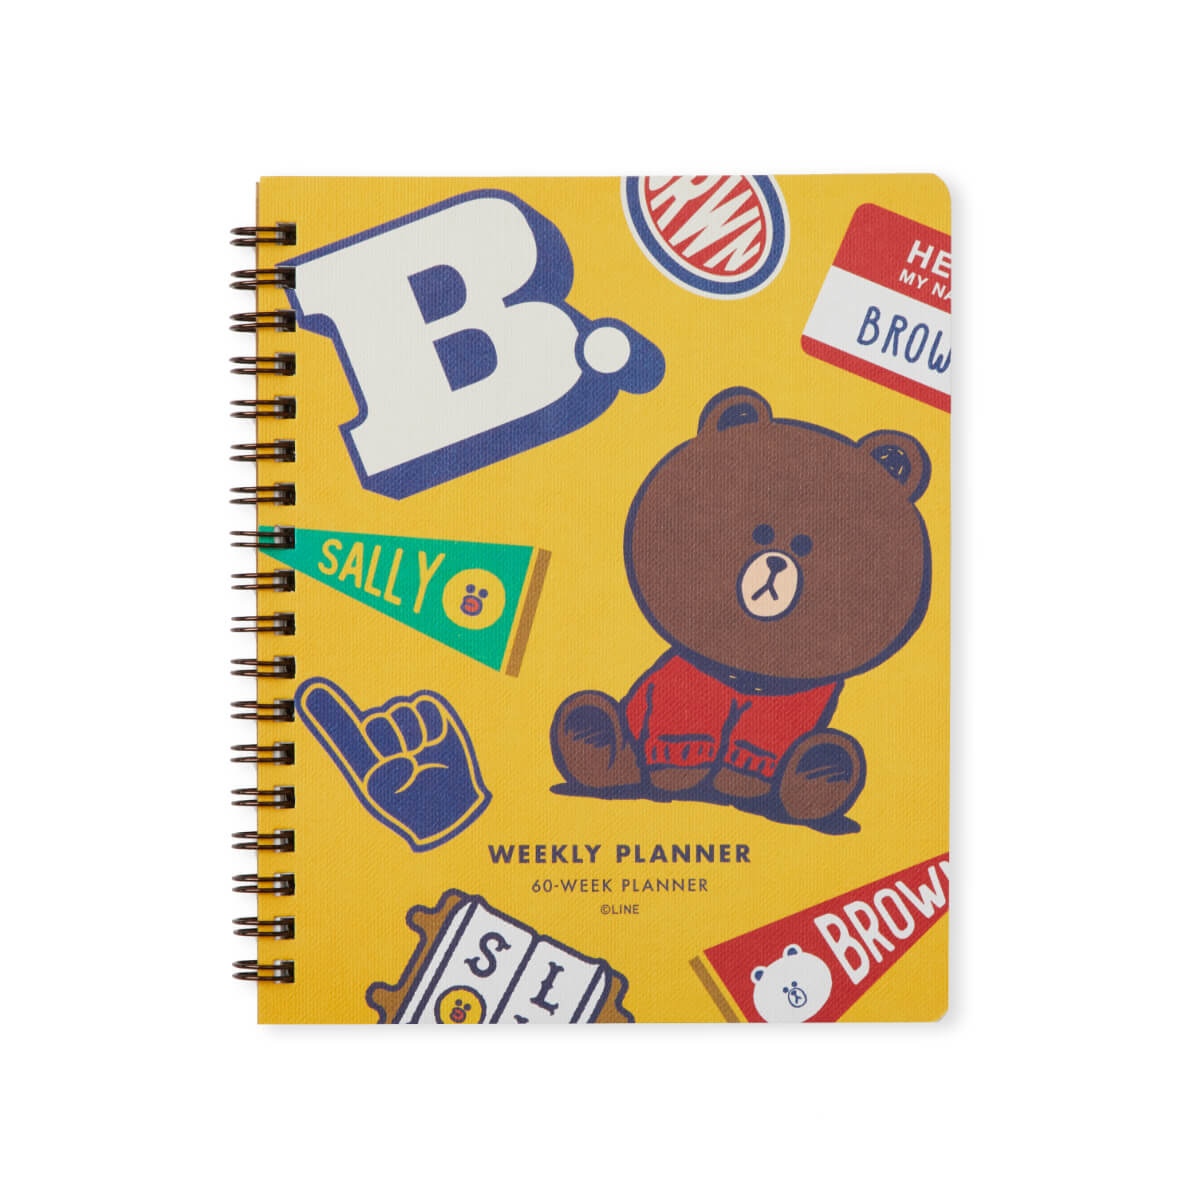 BROWN & FRIENDS University Weekly Planner